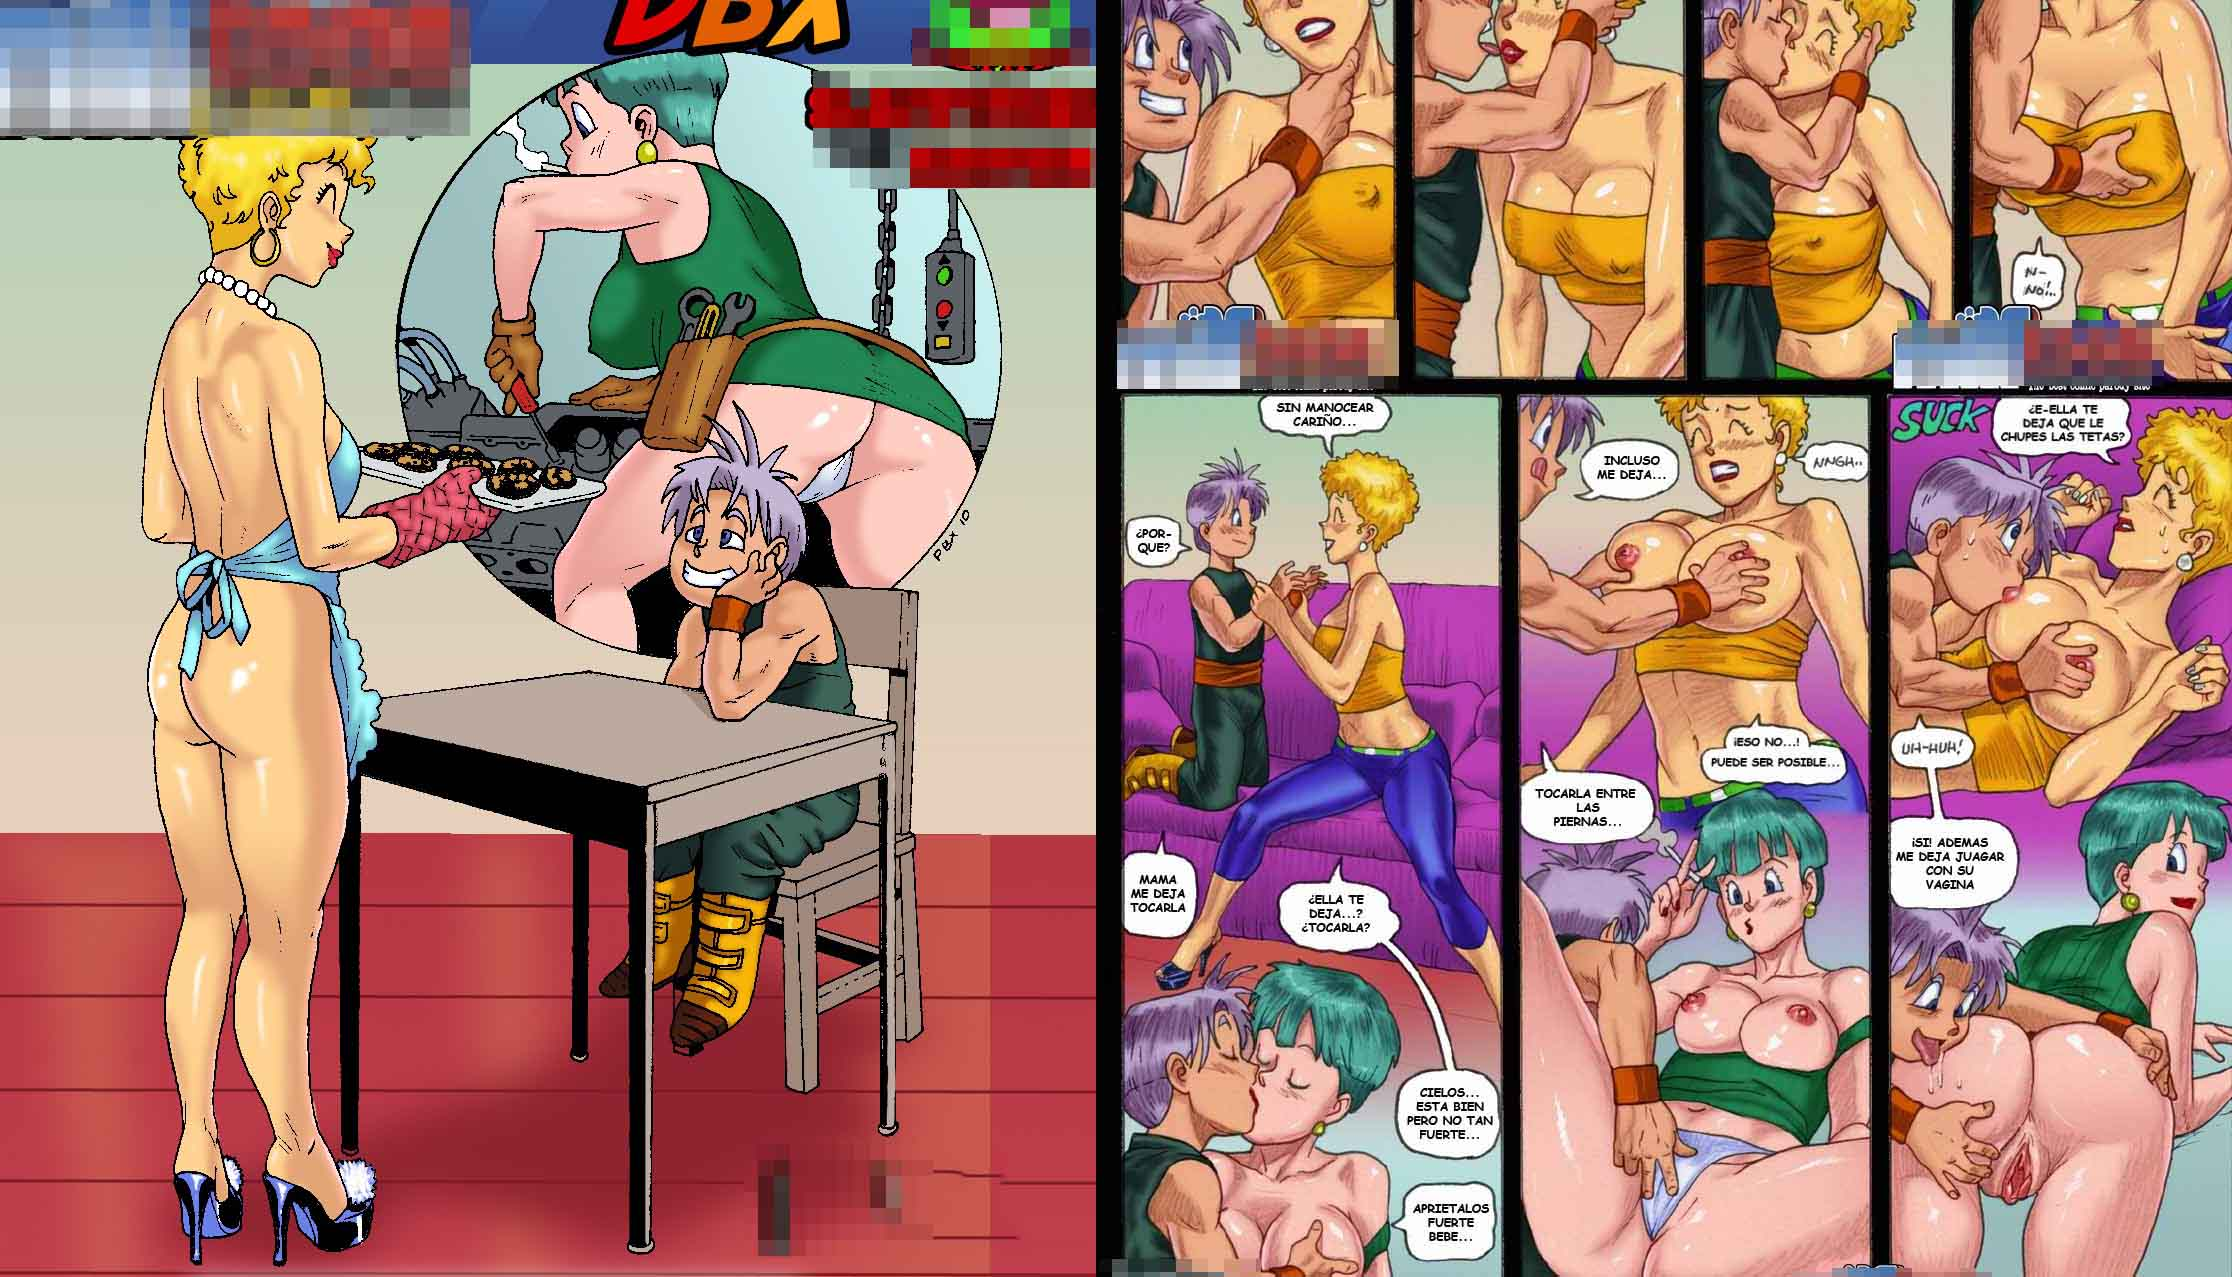 porno xxx hot de dragon ball